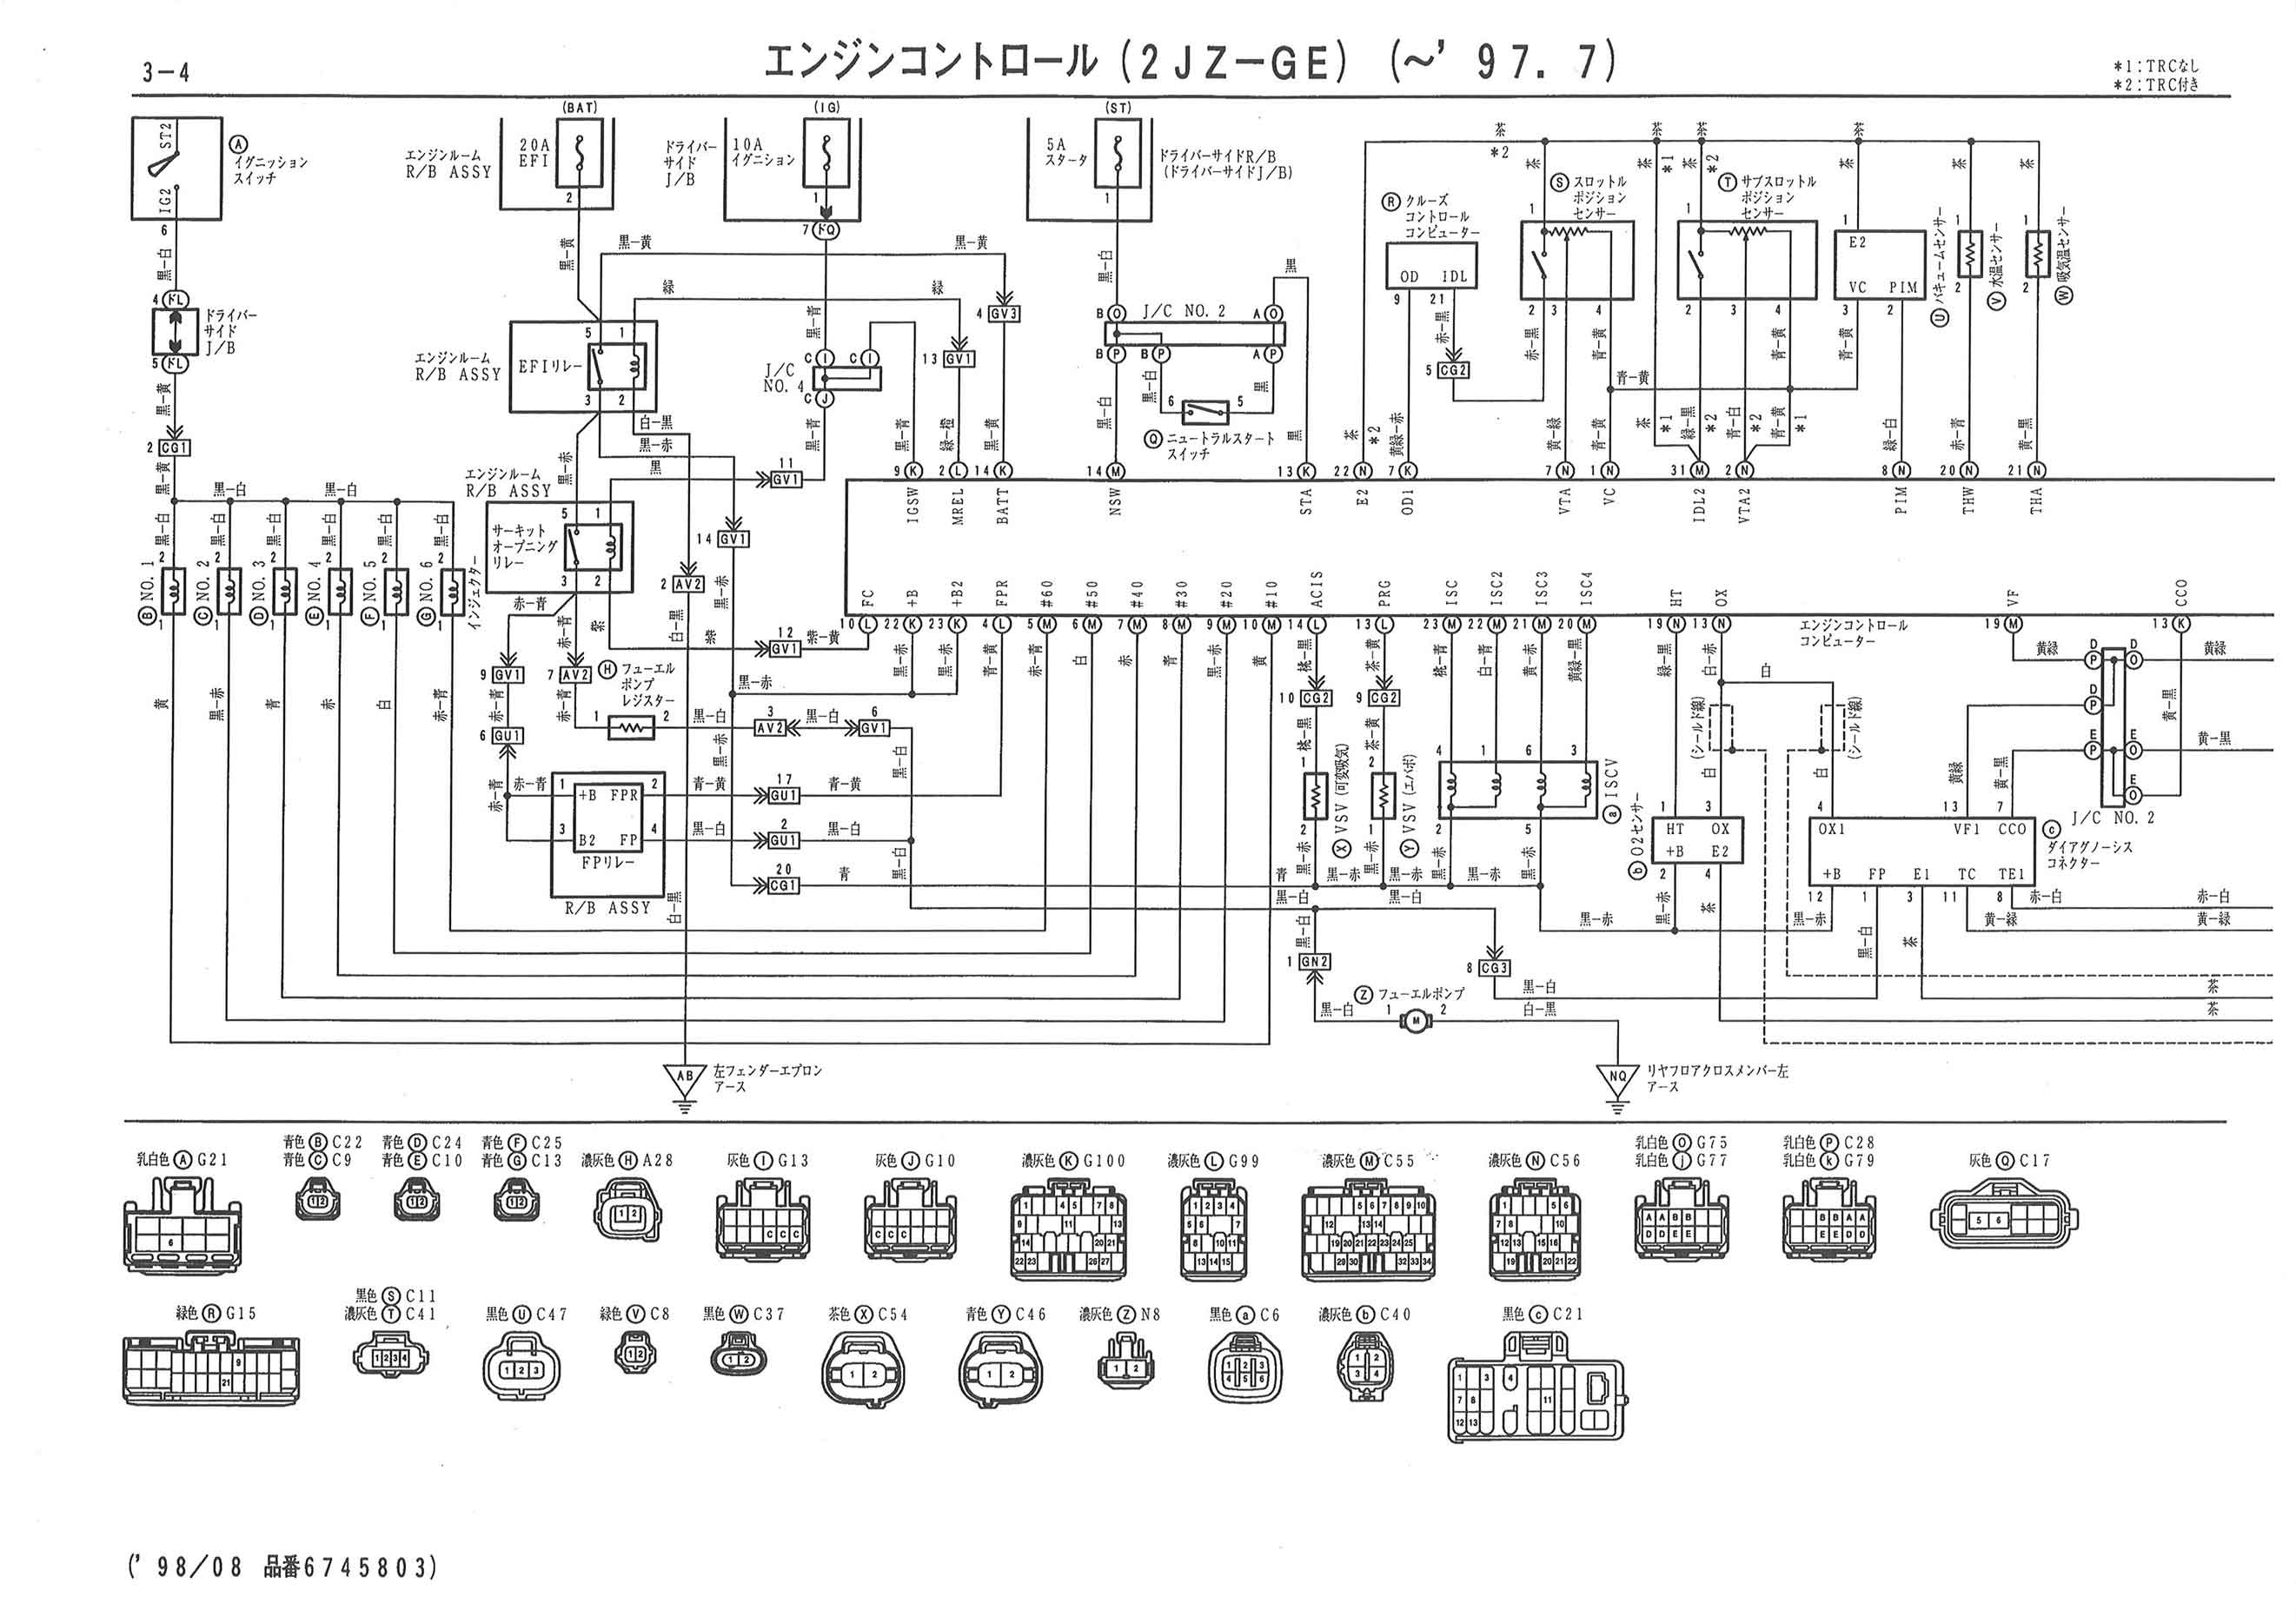 2JZ GE VVT i 3 ge vvt i 3 ge wiring diagrams at virtualis.co